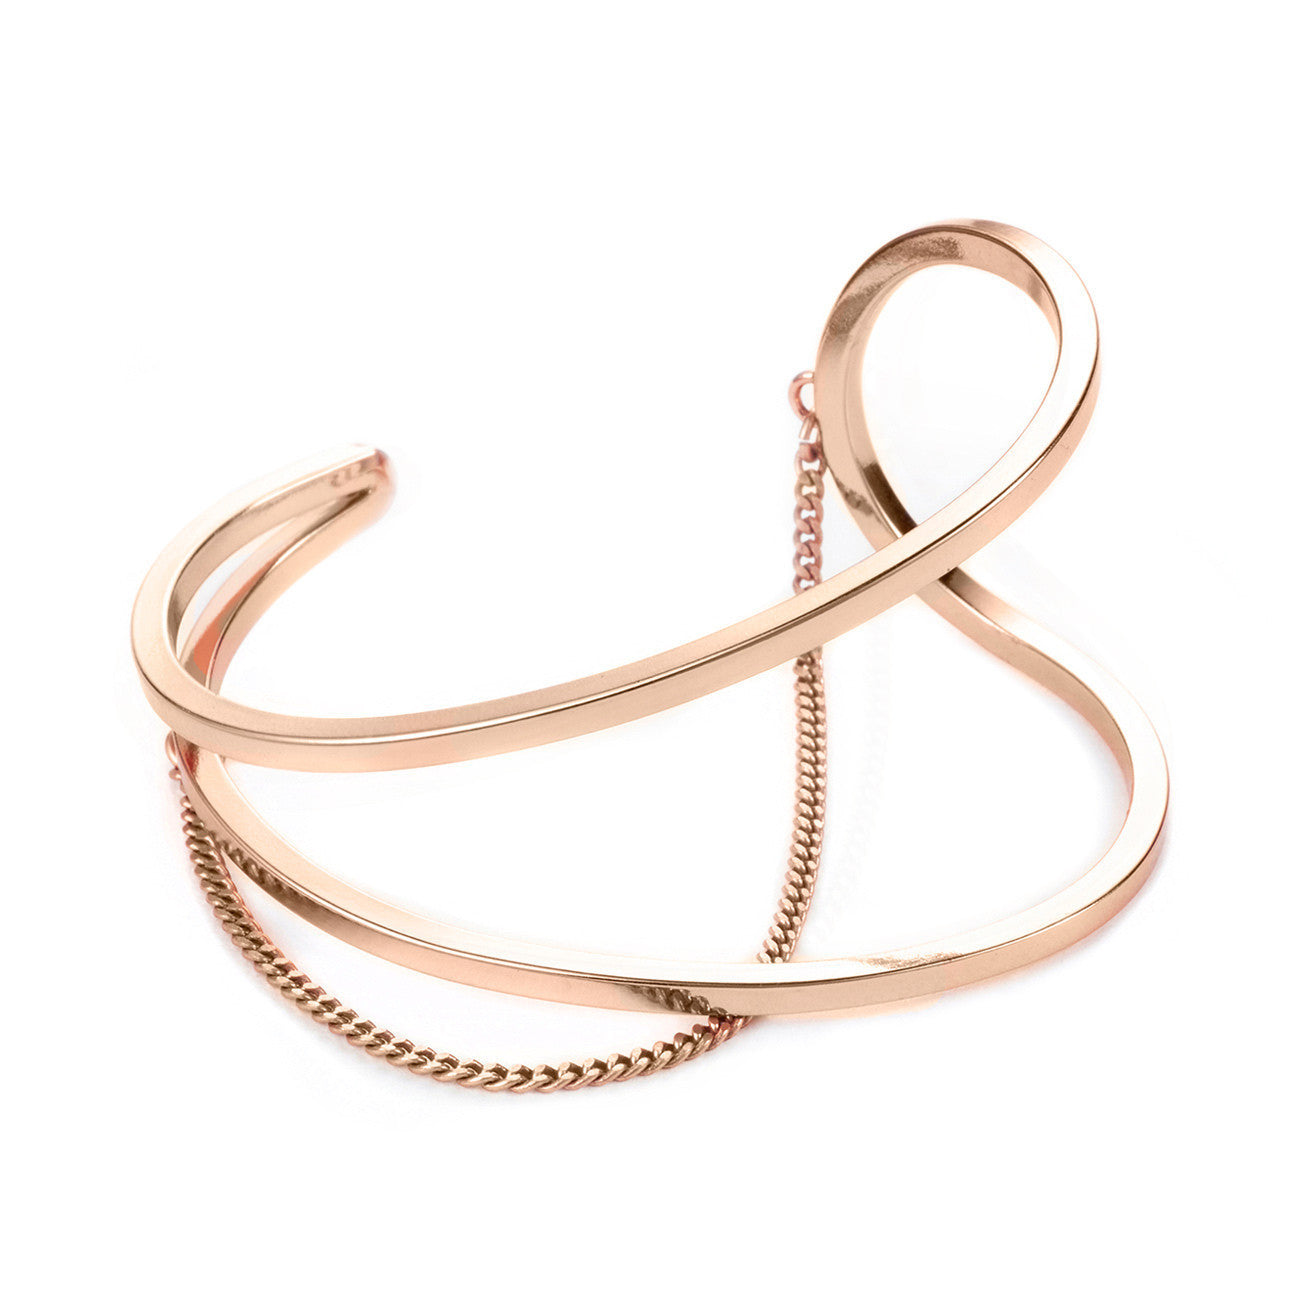 River Cuff in Rose Gold by Jenny Bird